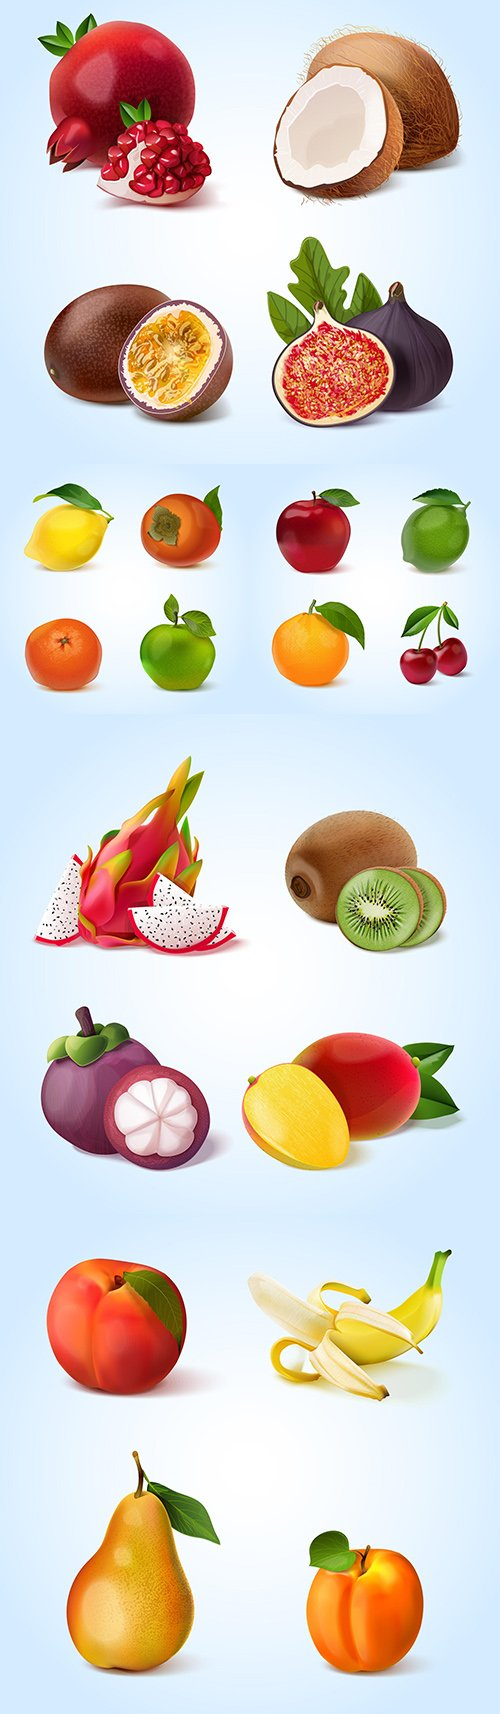 Realistic collection of ripe and tropical fruit illustrations